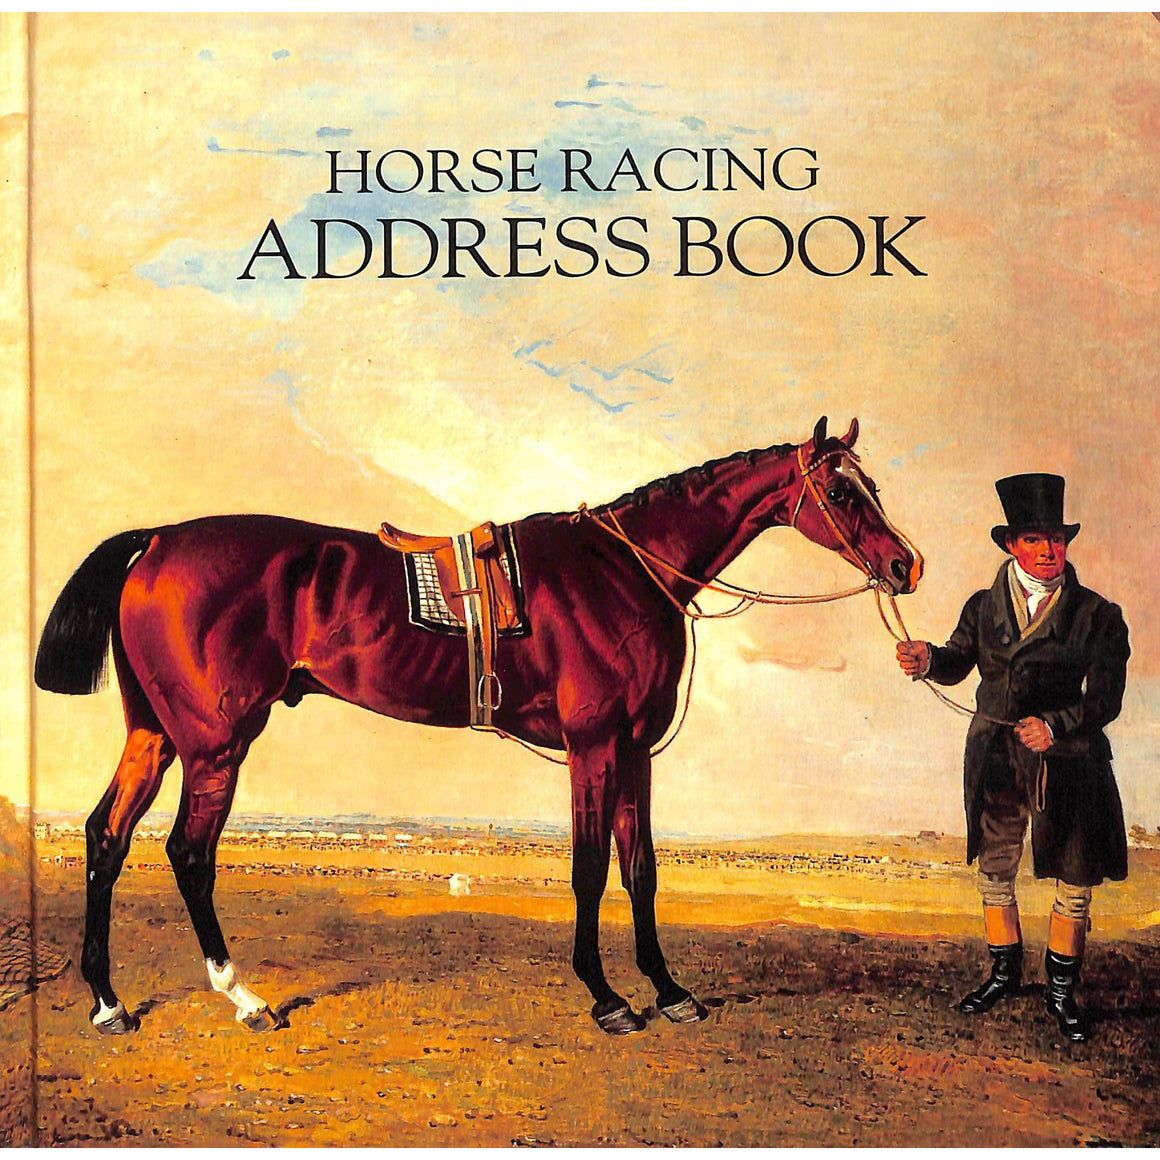 Horse Racing Address Book